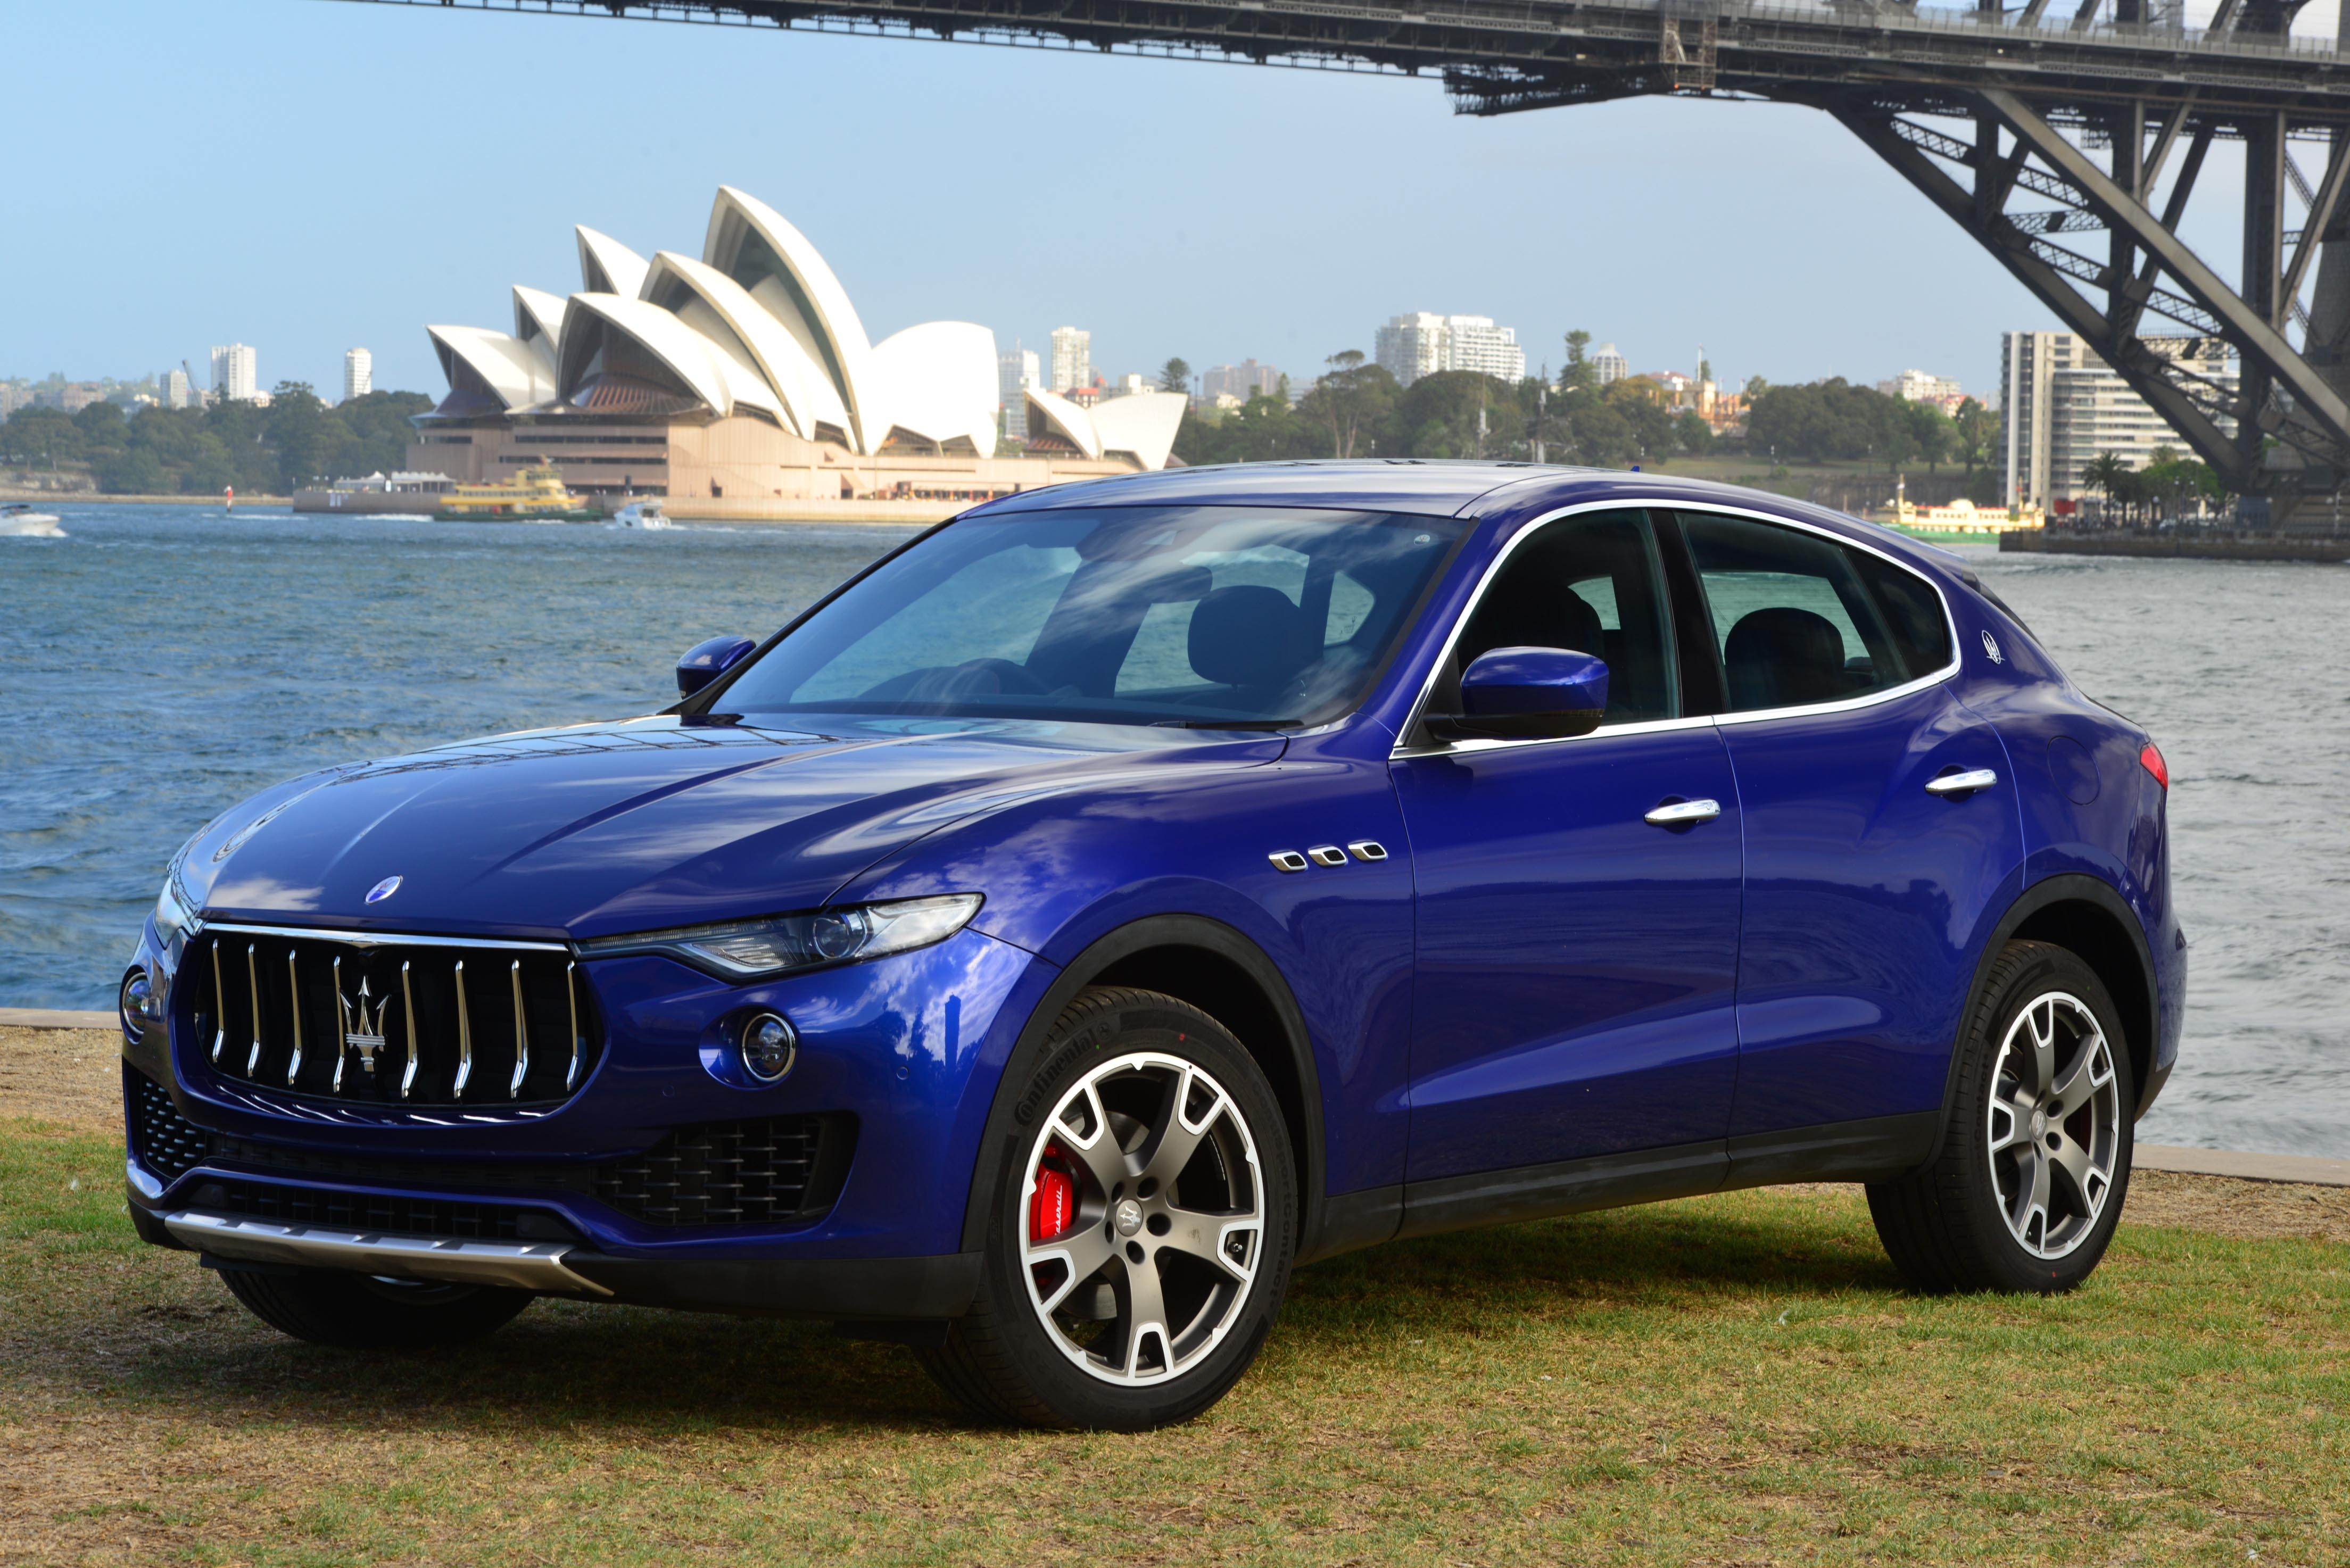 Road Test Maserati Levante A Luxury Suv Expanding Or Compromising The Image Driven Media